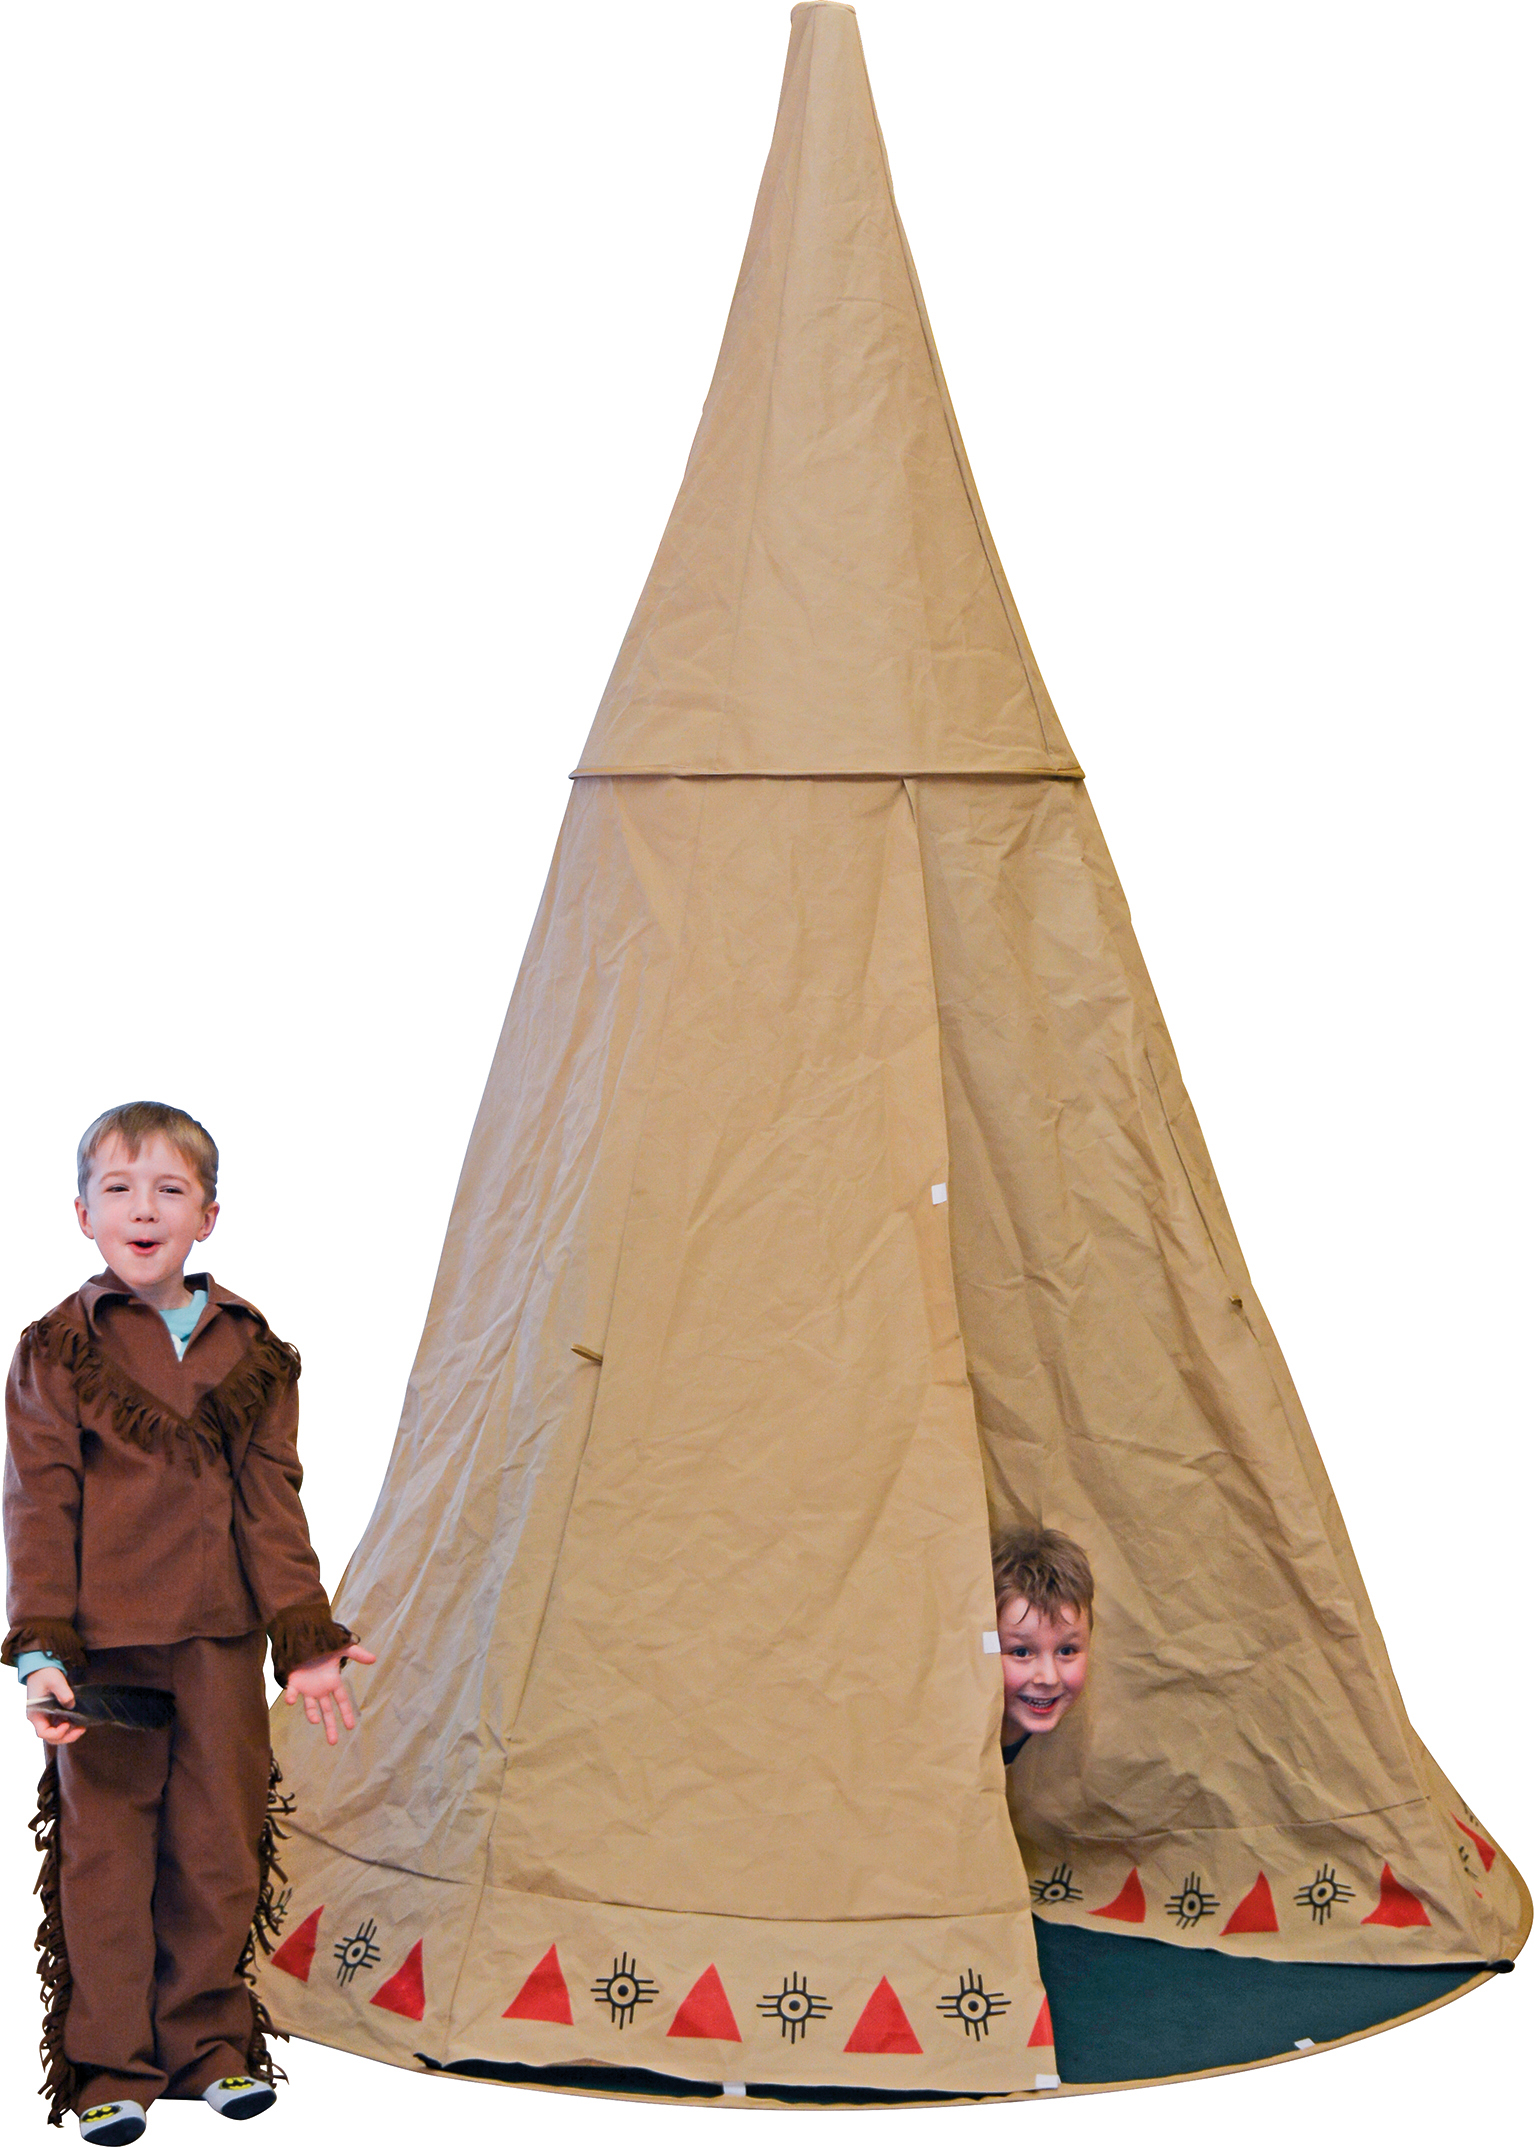 indianerzelt tipi f r kinder 250 x 200 cm rund freizeit. Black Bedroom Furniture Sets. Home Design Ideas